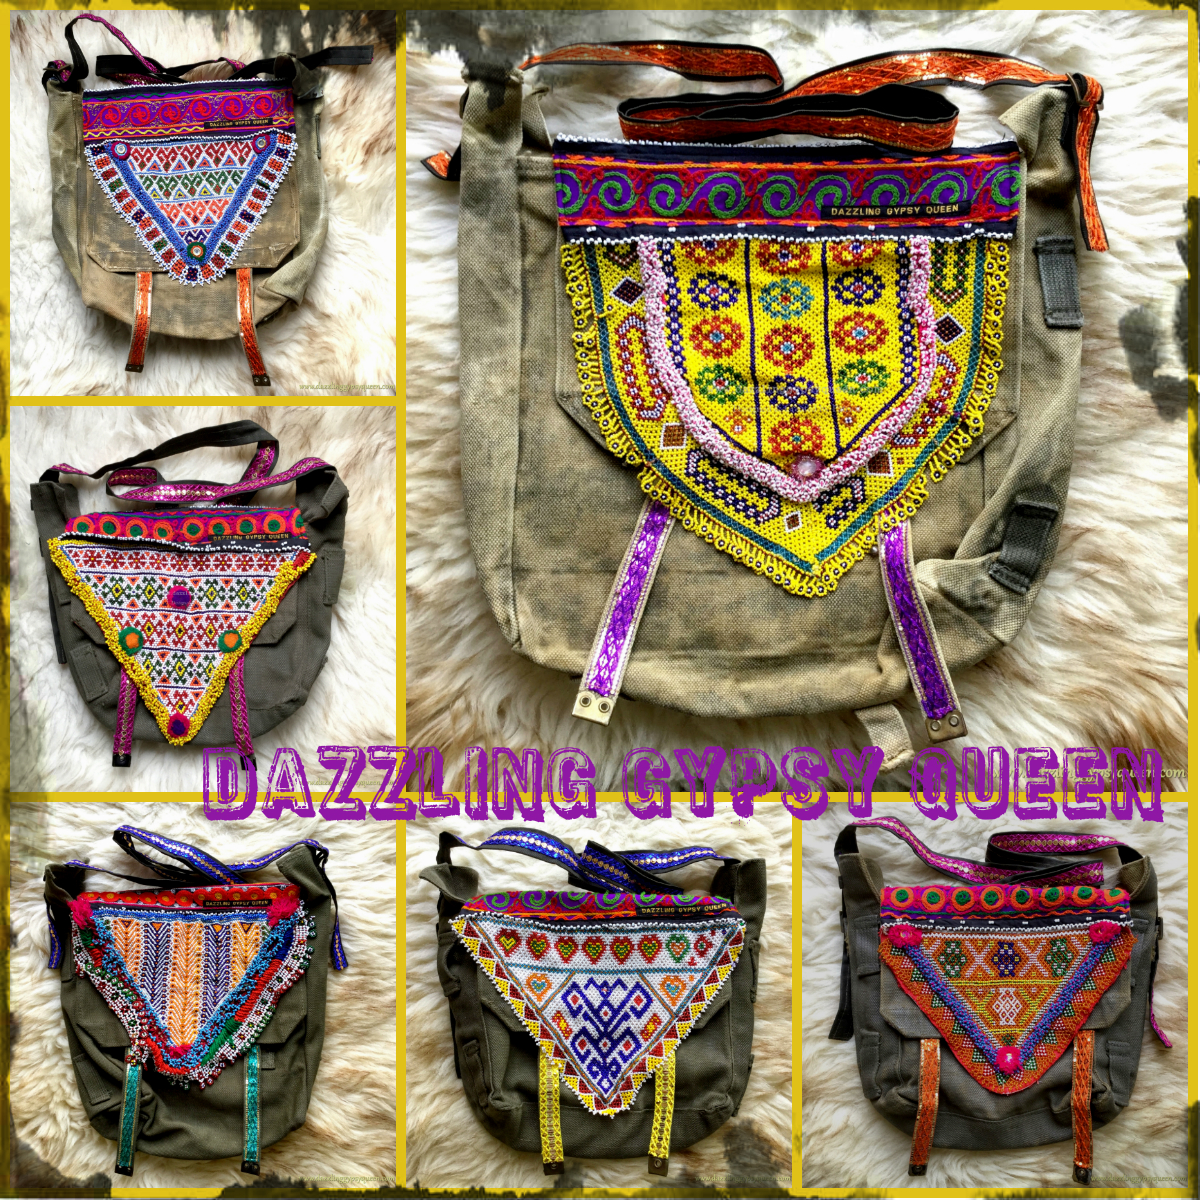 Vintage army bag with unique Kuchi Tribal beaded patch - by Dazzling Gypsy Queen